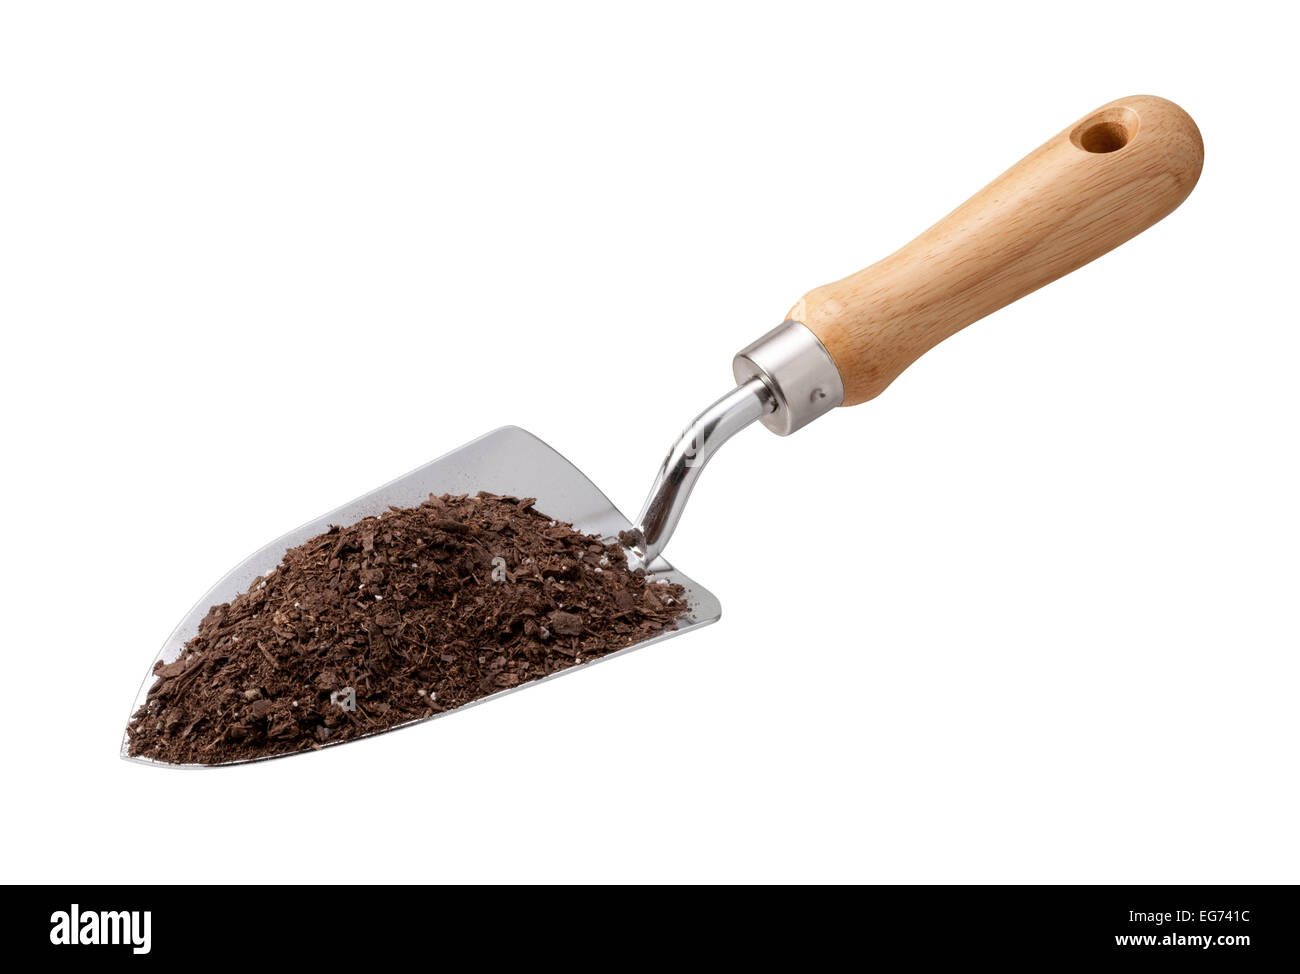 Garden Trowel with Potting Soil isolated on white. - Stock Image